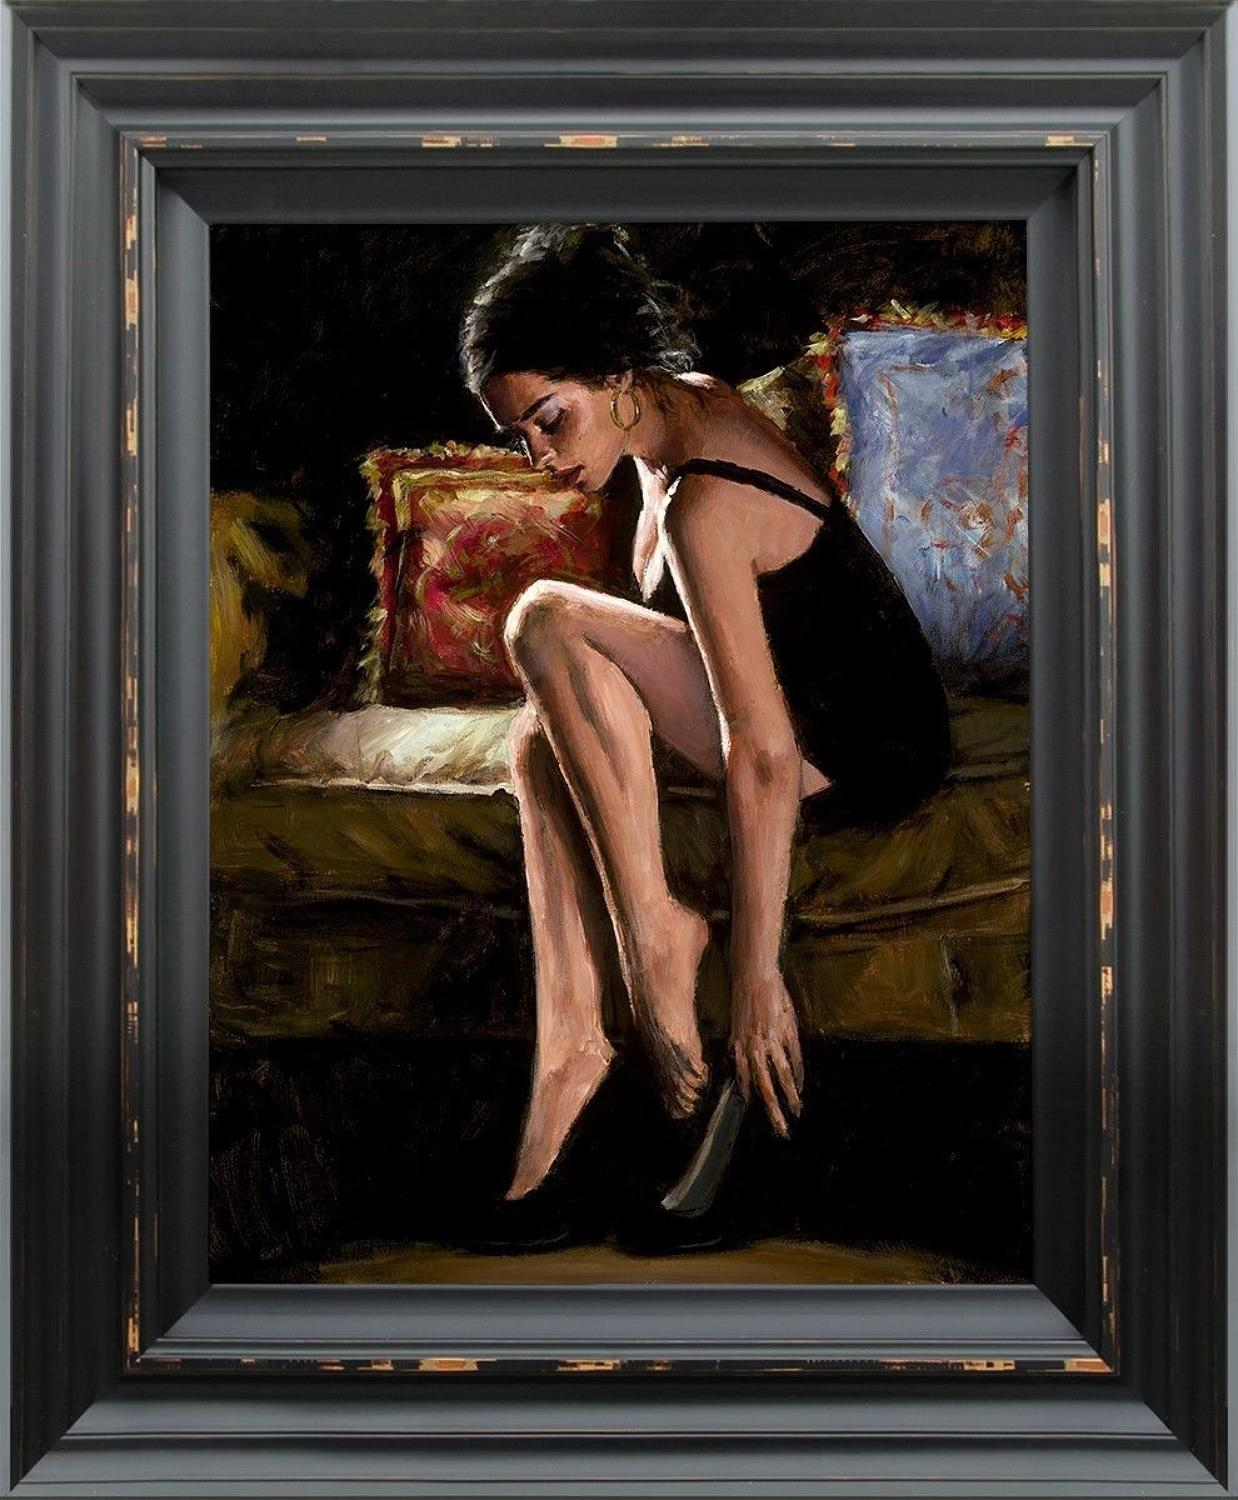 Blue and Red III  Framed Art Print by Fabian Perez